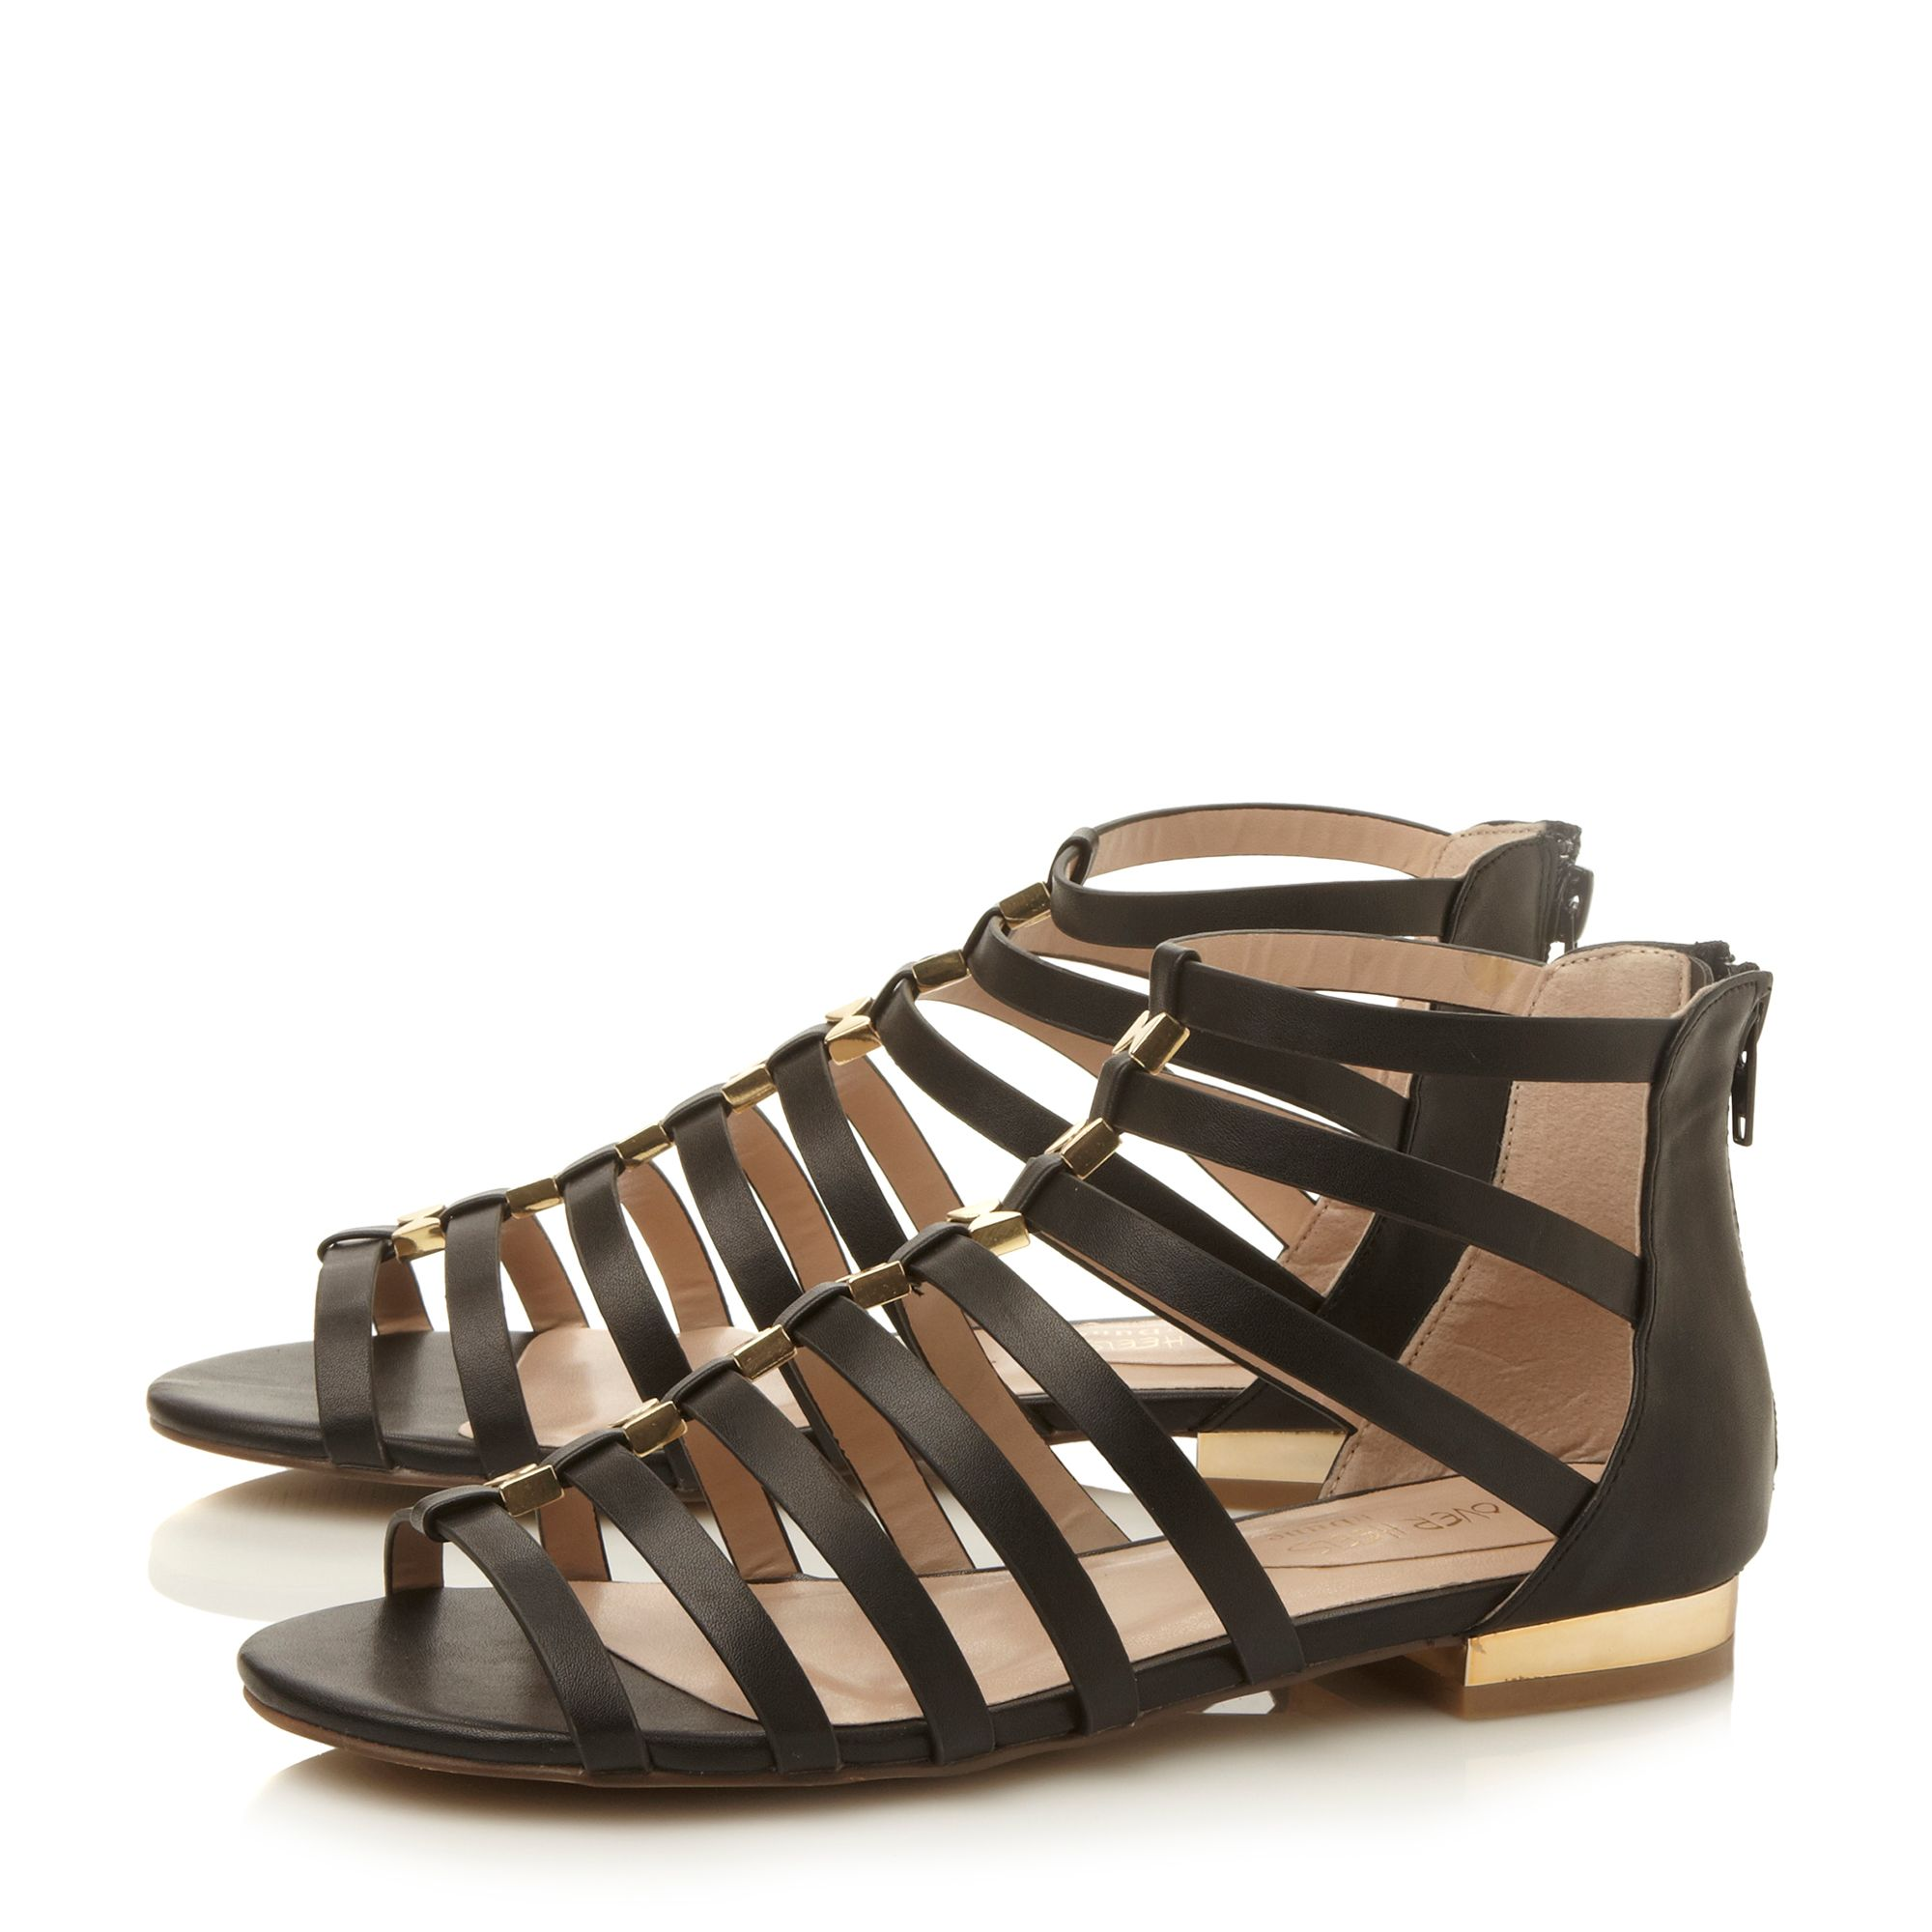 Corfu caged flat sandals